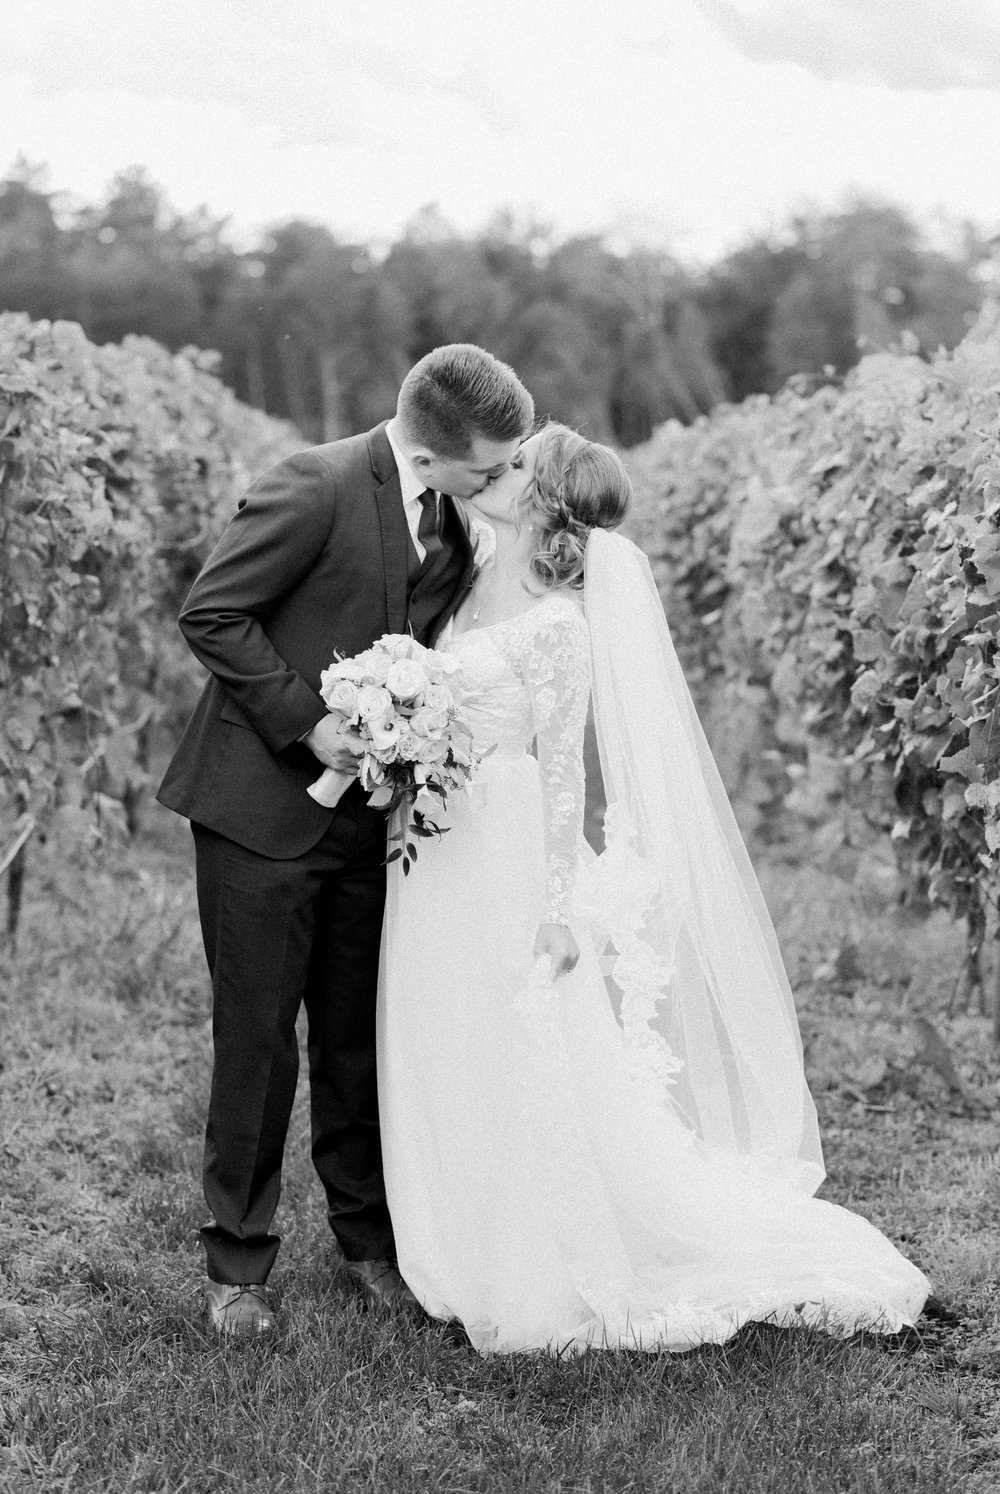 GrantElizabeth_wineryatbullrun_DCwedding_Virginiaweddingphotographer 18.jpg